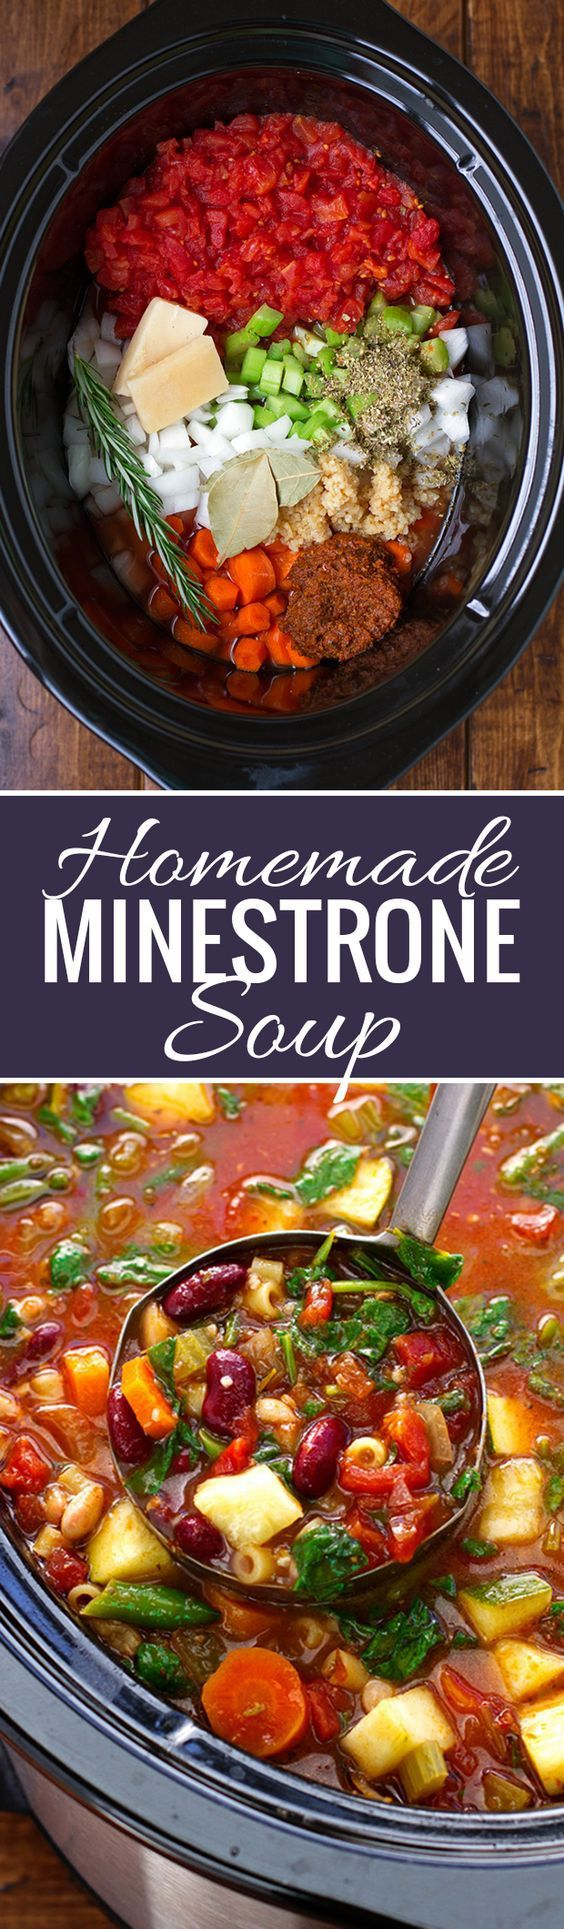 Homemade Crock Pot Minestrone Soup Recipe | Little Spice Jar - The BEST Homemade Soups Recipes - Easy, Quick and Yummy Lunch and Dinner Family Favorites Meals Ideas